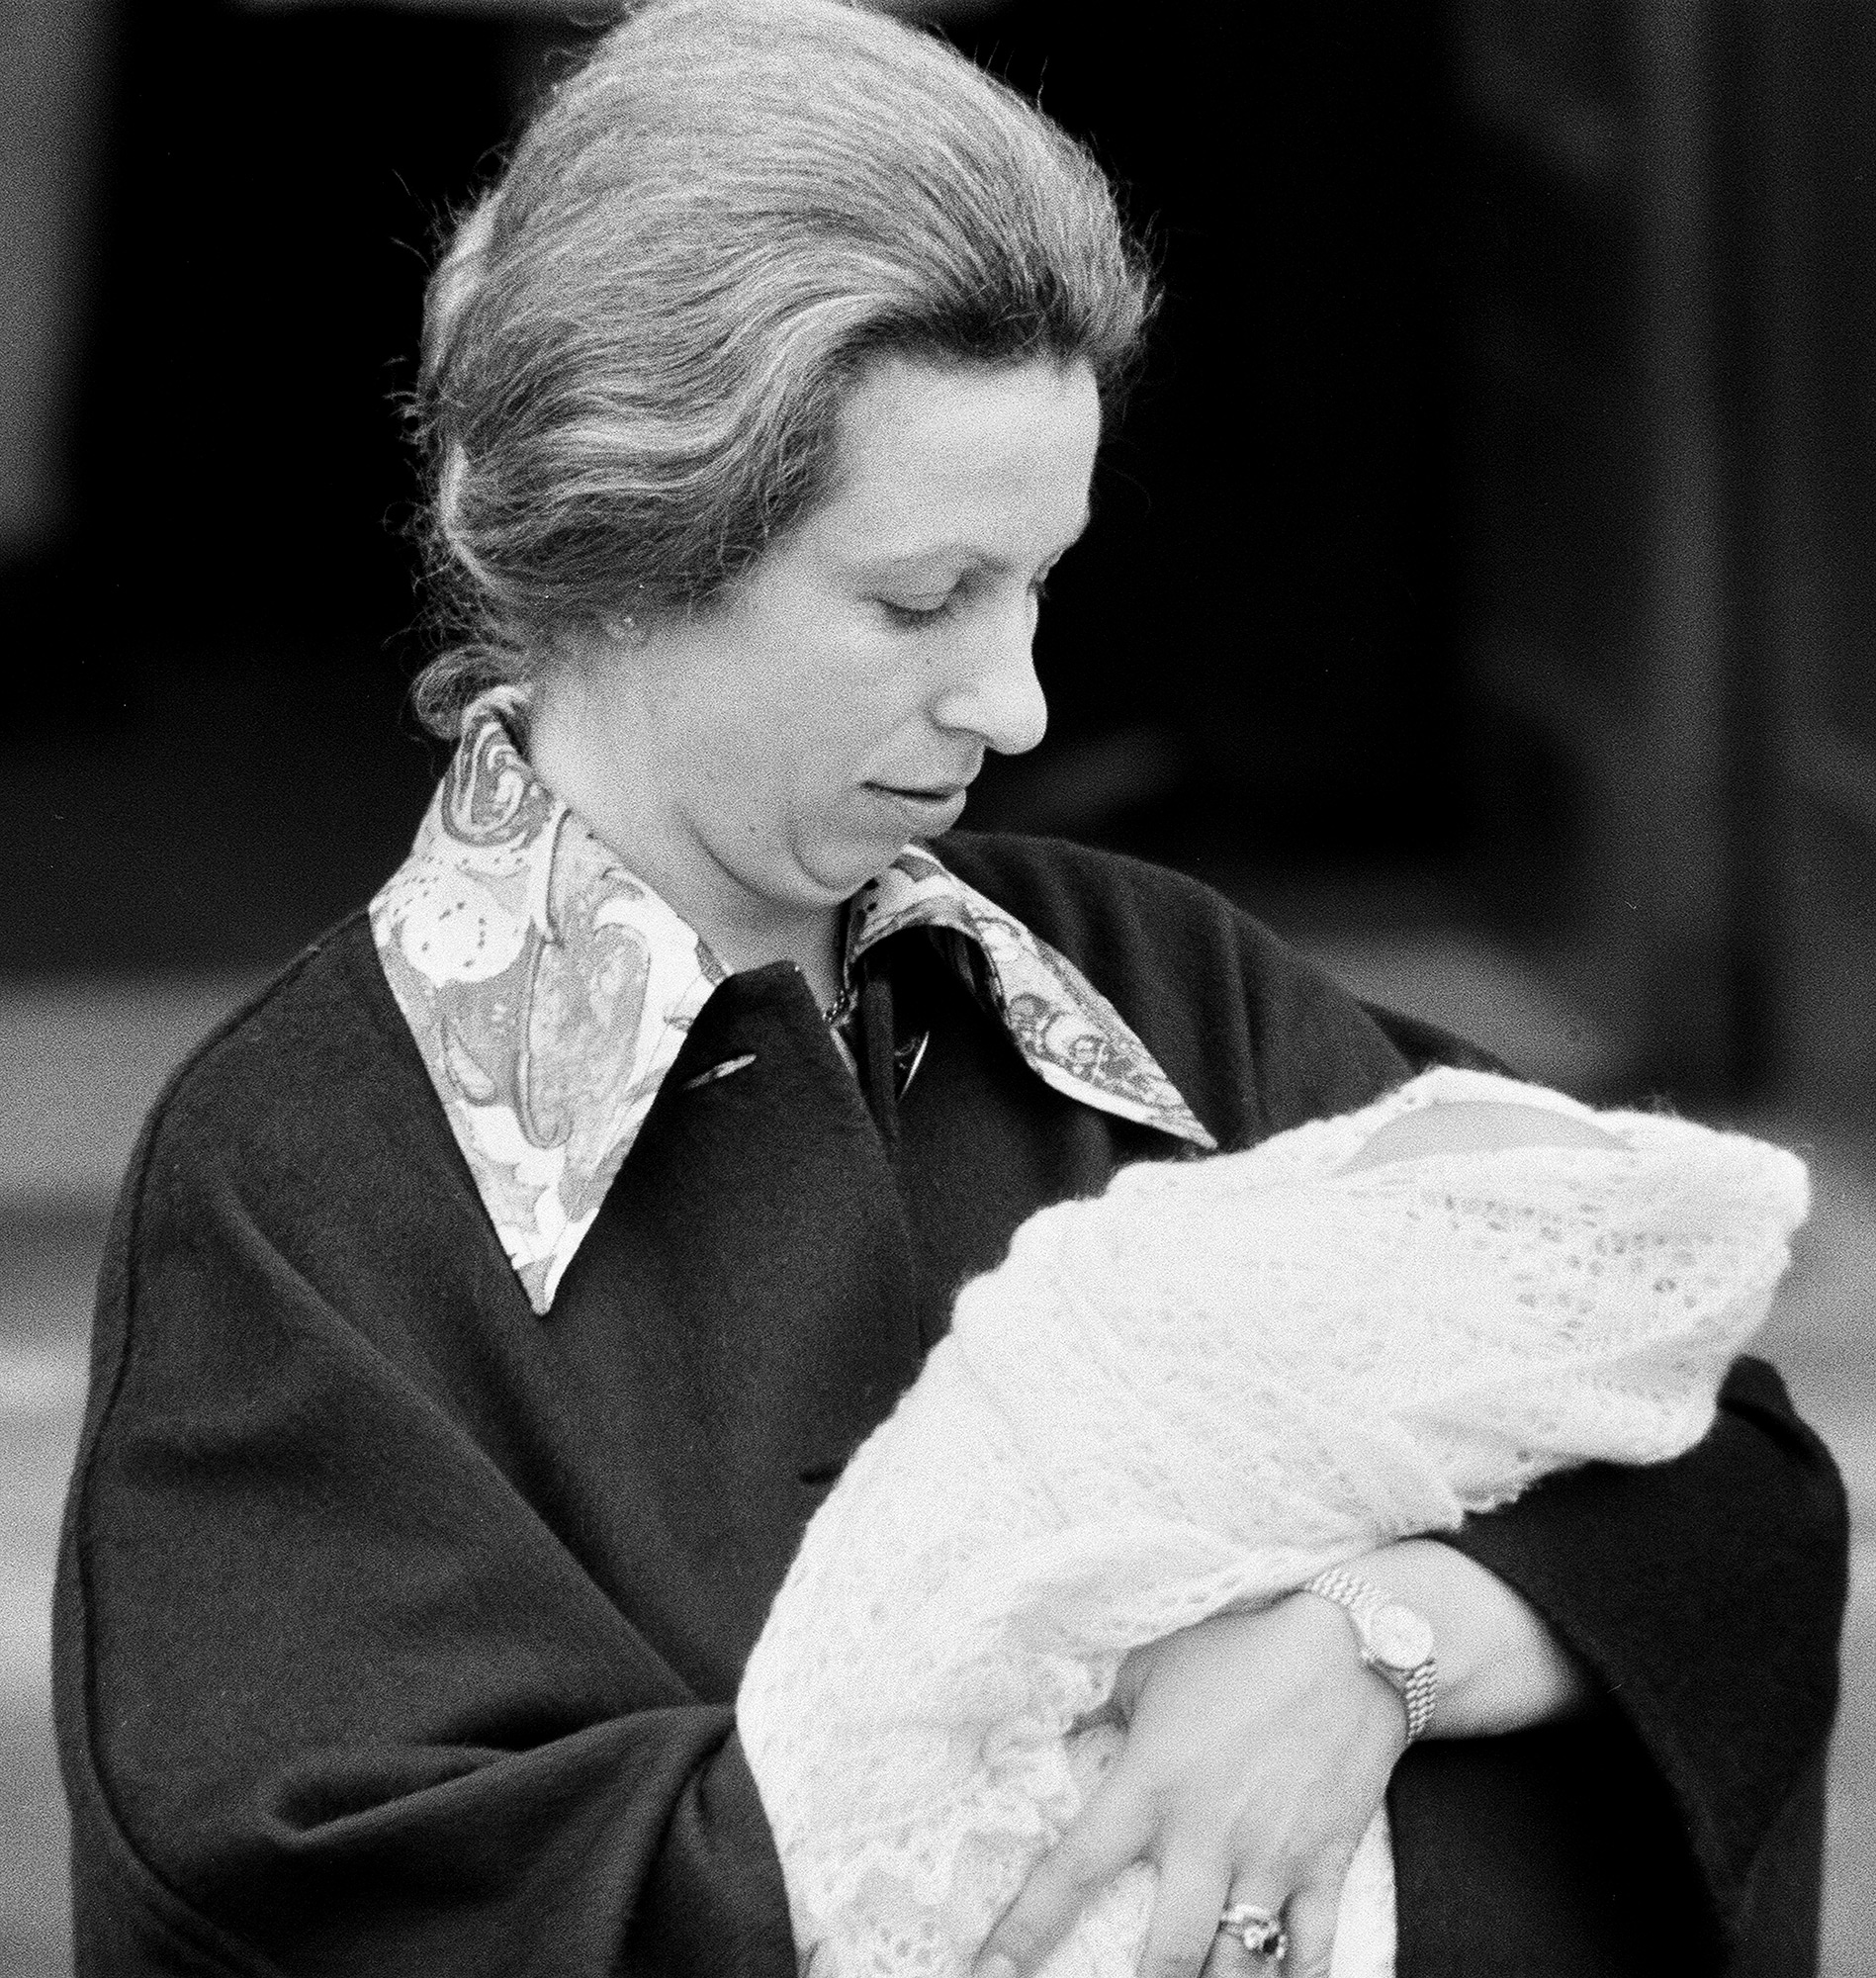 Her Royal Highness Anne leaves St Mary's Hospital in Paddington, London, after the birth of her baby daughter Princess Zara